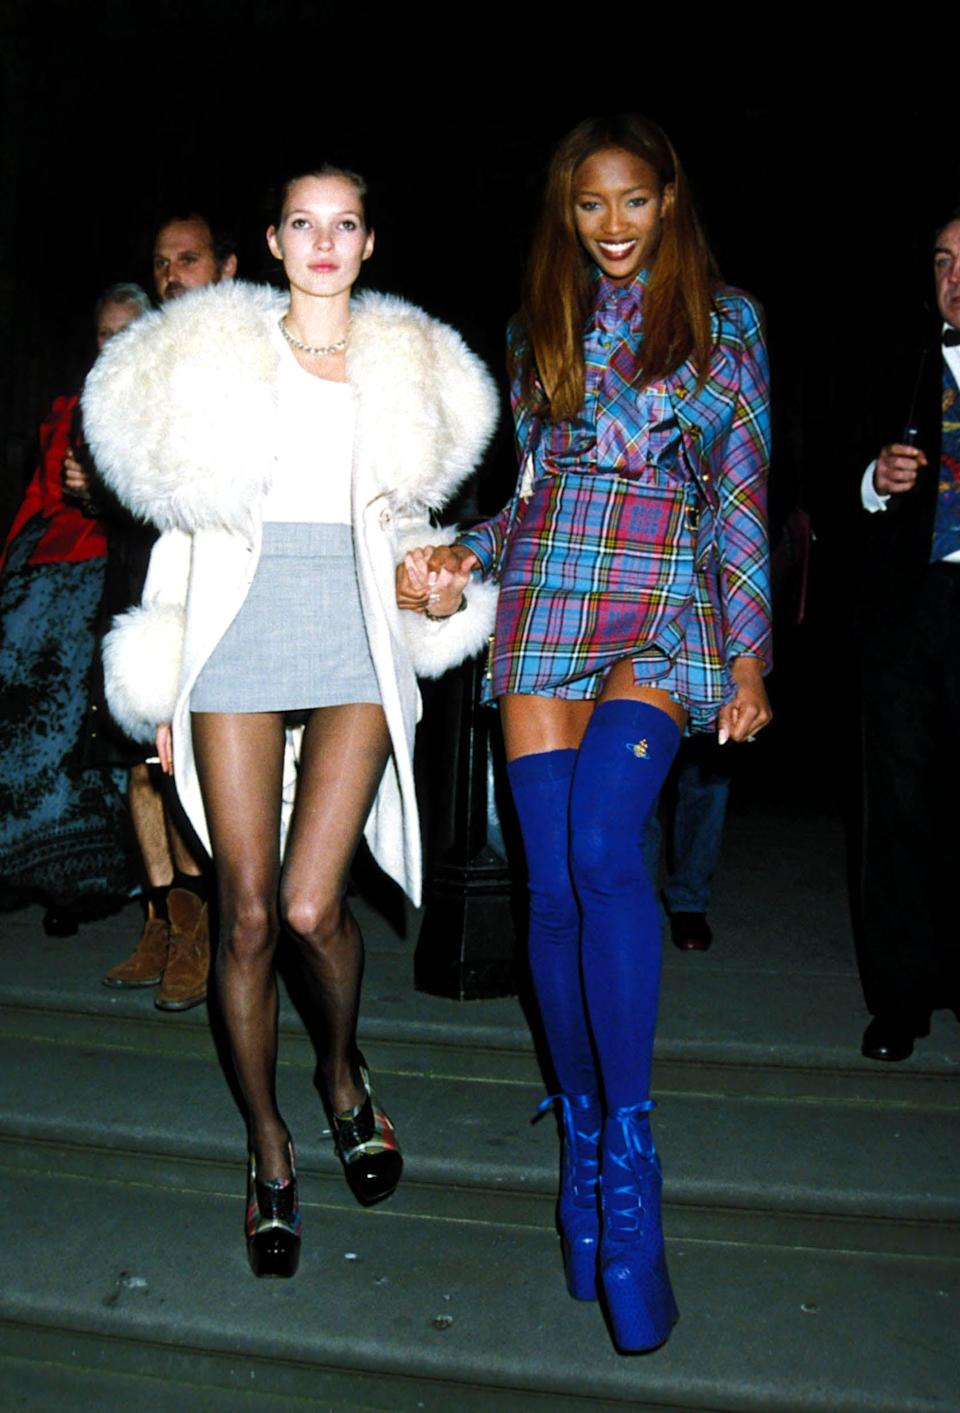 """<p>Models <a class=""""link rapid-noclick-resp"""" href=""""https://www.popsugar.com/Kate-Moss"""" rel=""""nofollow noopener"""" target=""""_blank"""" data-ylk=""""slk:Kate Moss"""">Kate Moss</a> and <a href=""""https://www.popsugar.com/fashion/Naomi-Campbell-Runway-Photos-46531324"""" class=""""link rapid-noclick-resp"""" rel=""""nofollow noopener"""" target=""""_blank"""" data-ylk=""""slk:Naomi Campbell"""">Naomi Campbell</a> were a stylish force to be reckoned with at London Fashion Week in 1993. Moss paired her statement fur-trimmed coat with a white blouse and gray miniskirt while Campbell punched up her plaid dress with electric blue thigh-high socks and platform shoes. </p>"""